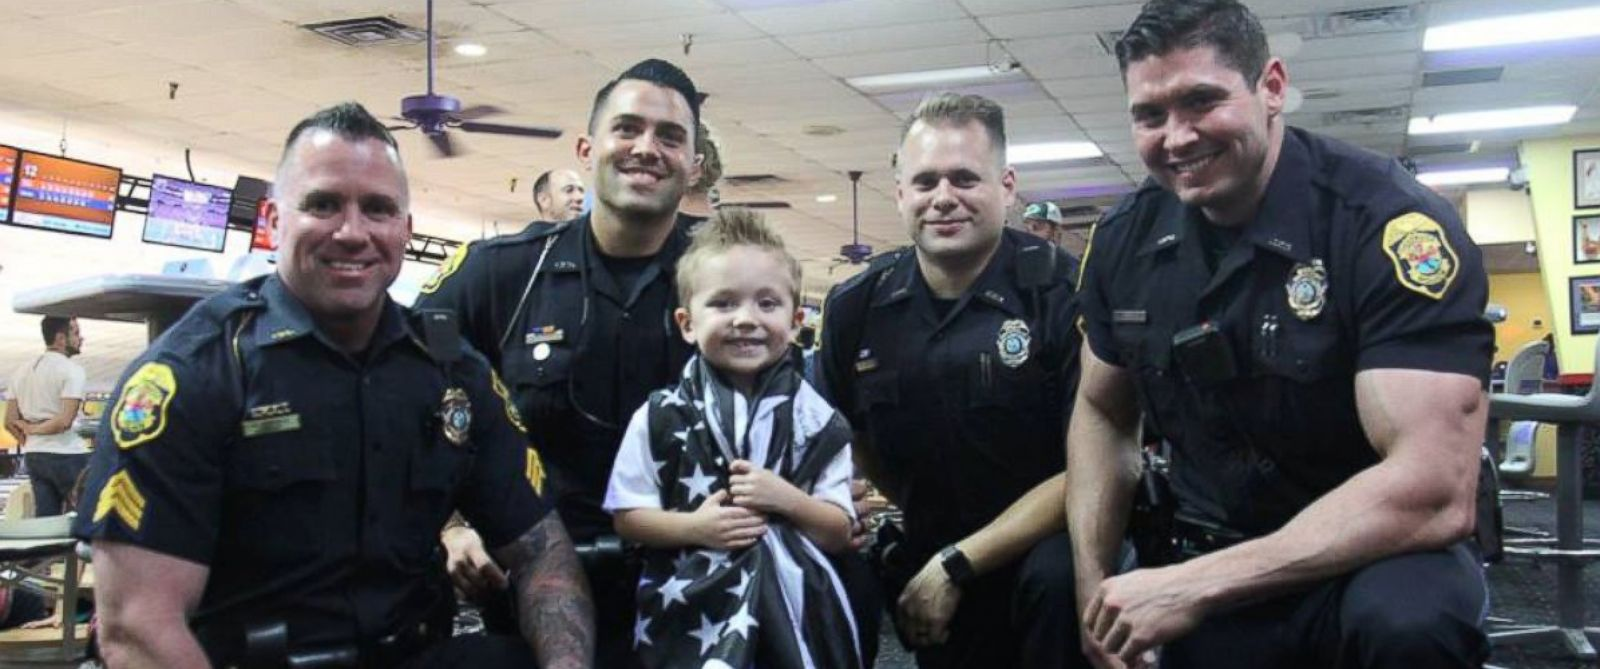 florida officers surprise pint size fan at police themed birthday